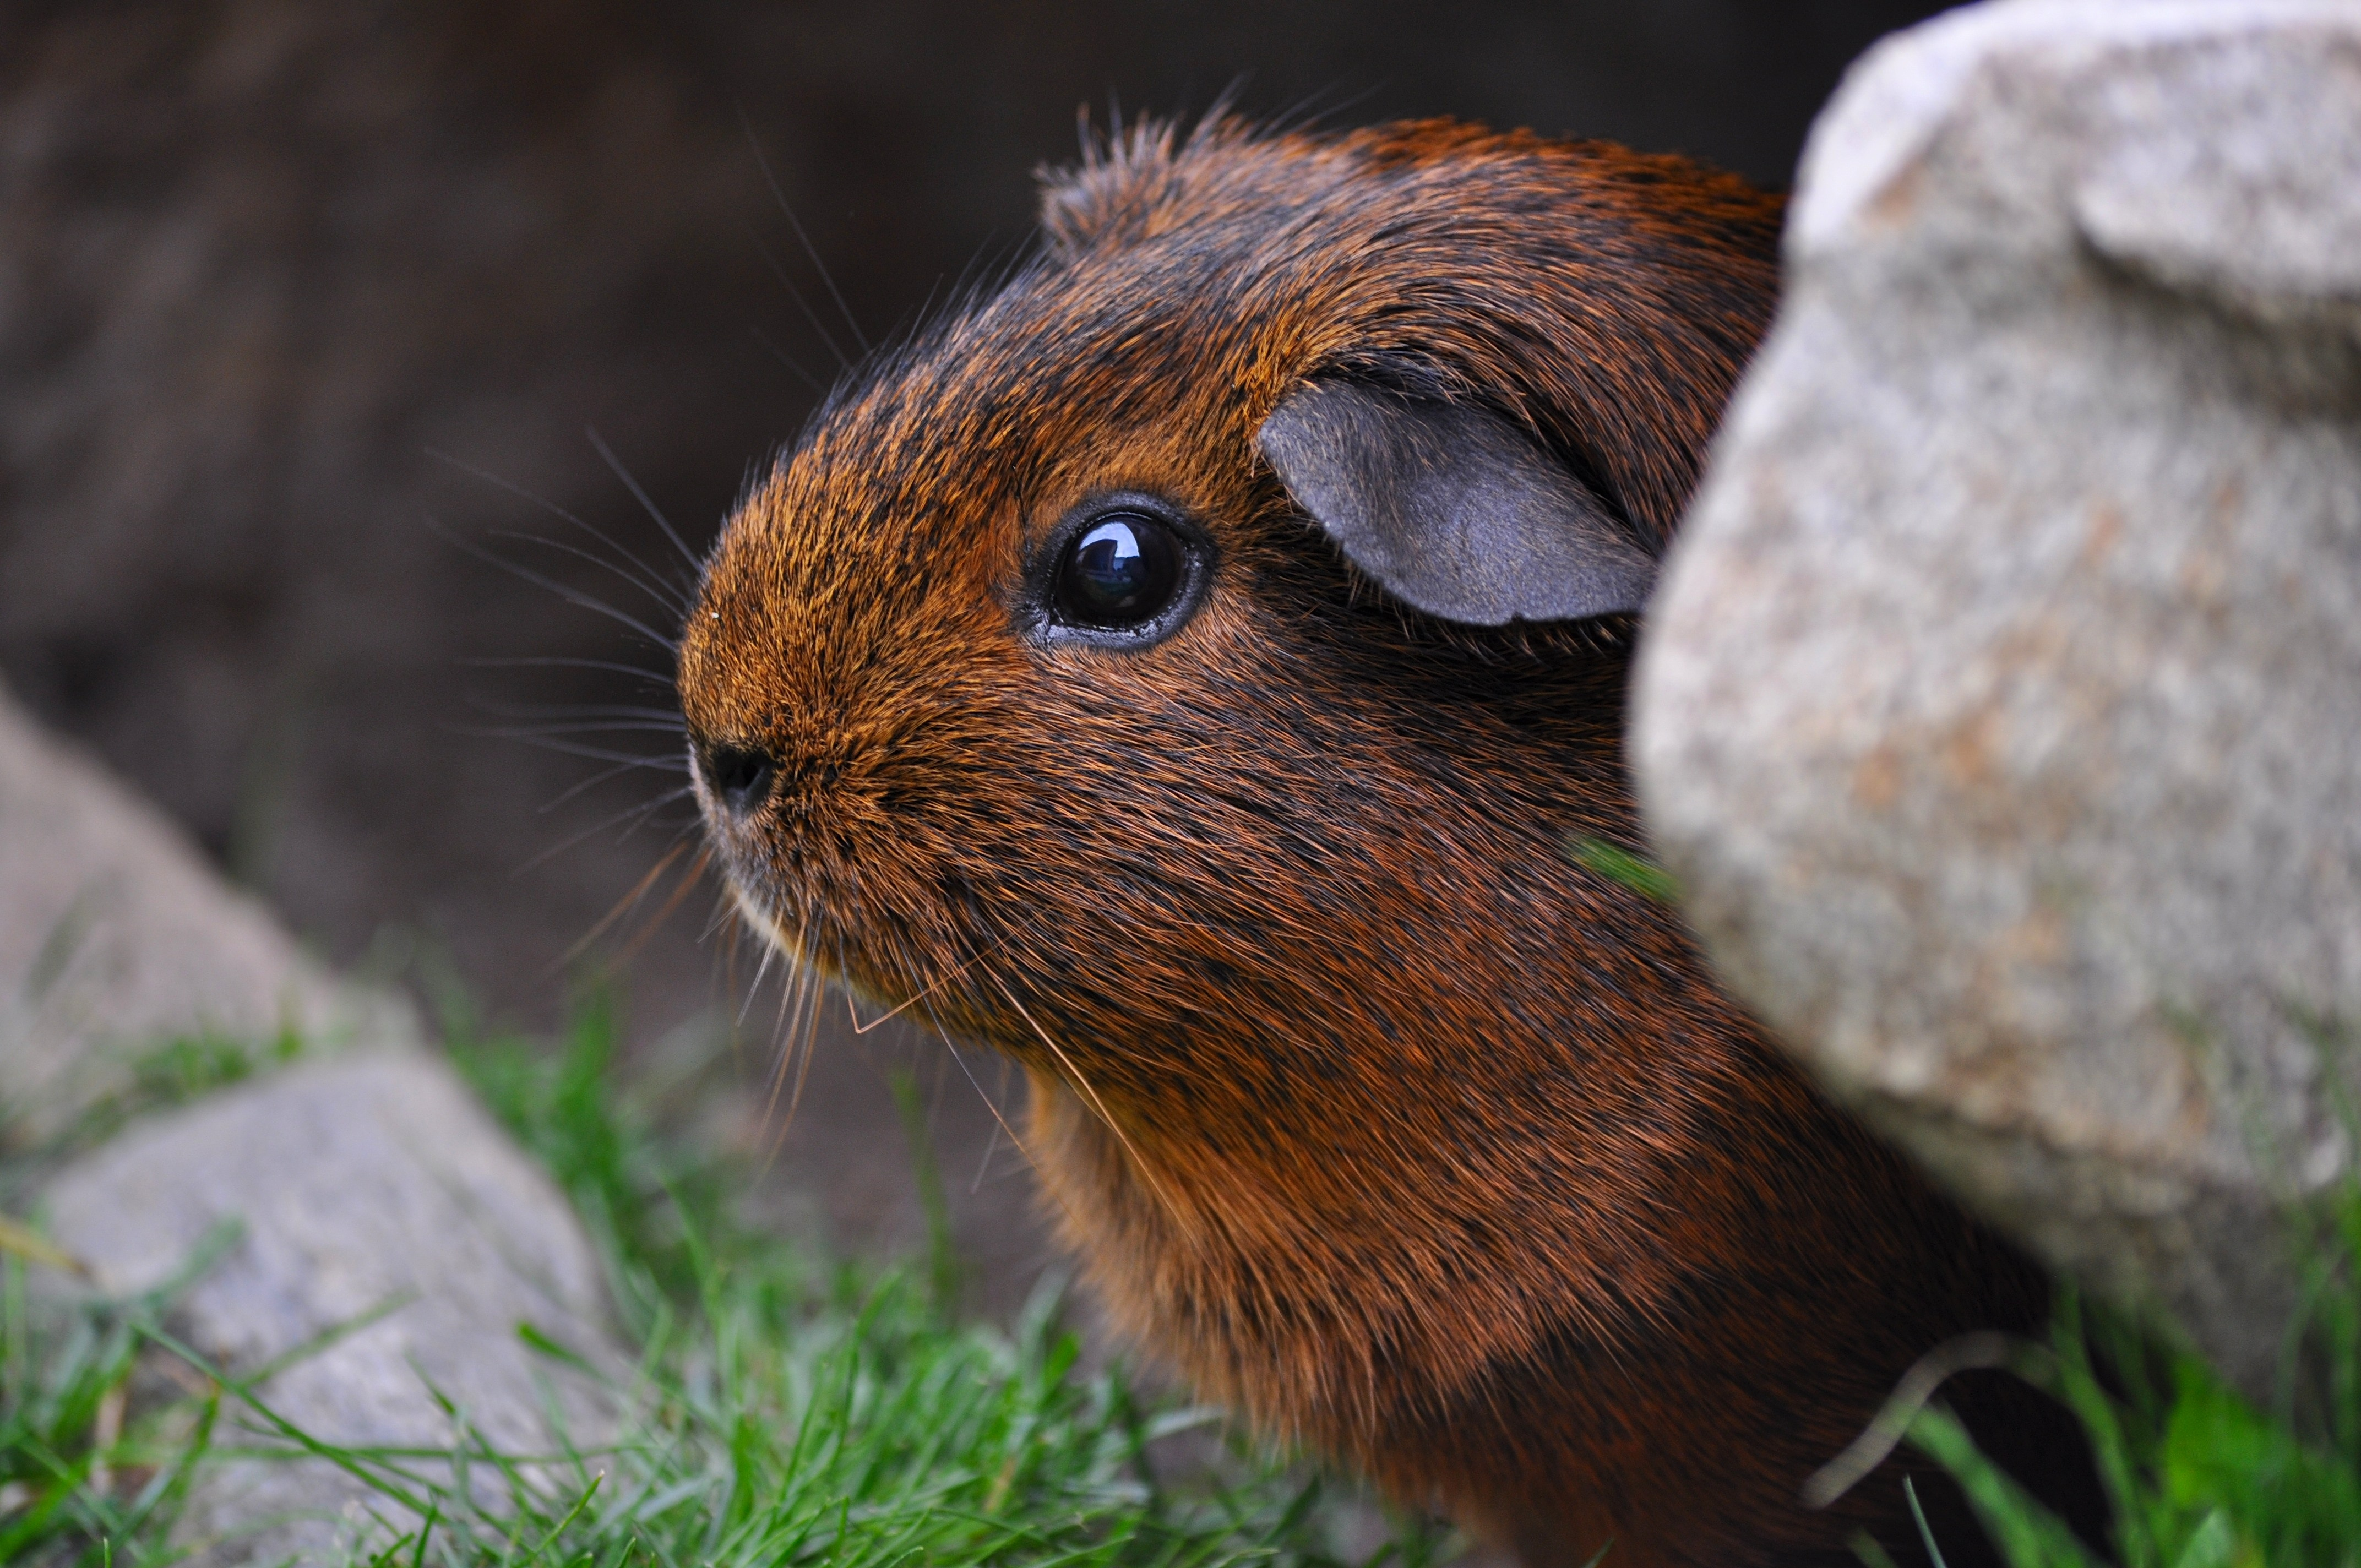 119095 download wallpaper Animals, Guinea Pig, Sit, Rodent screensavers and pictures for free